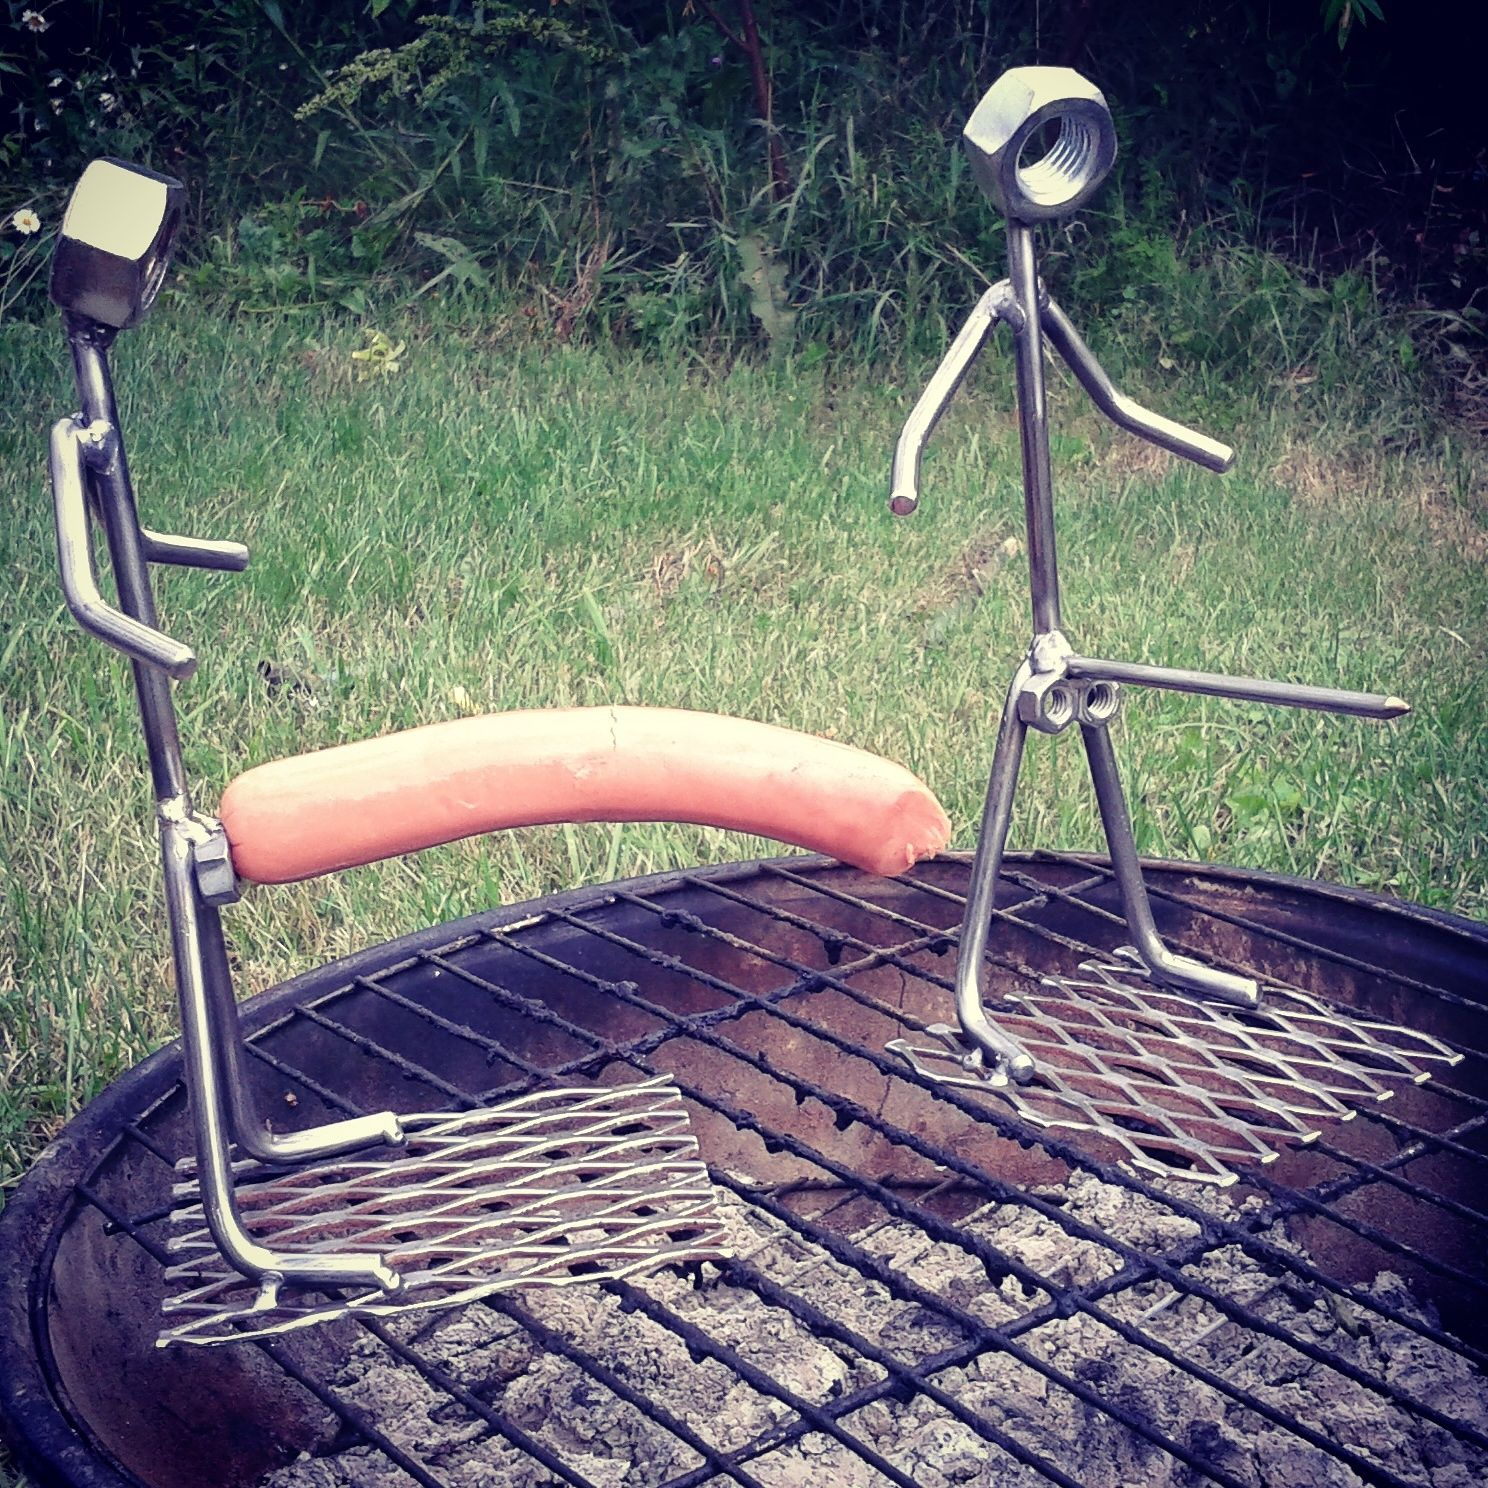 These Fun Hot Dog Cookers Will Make You The Grill Freakin Master  # Muebles Rial Asados